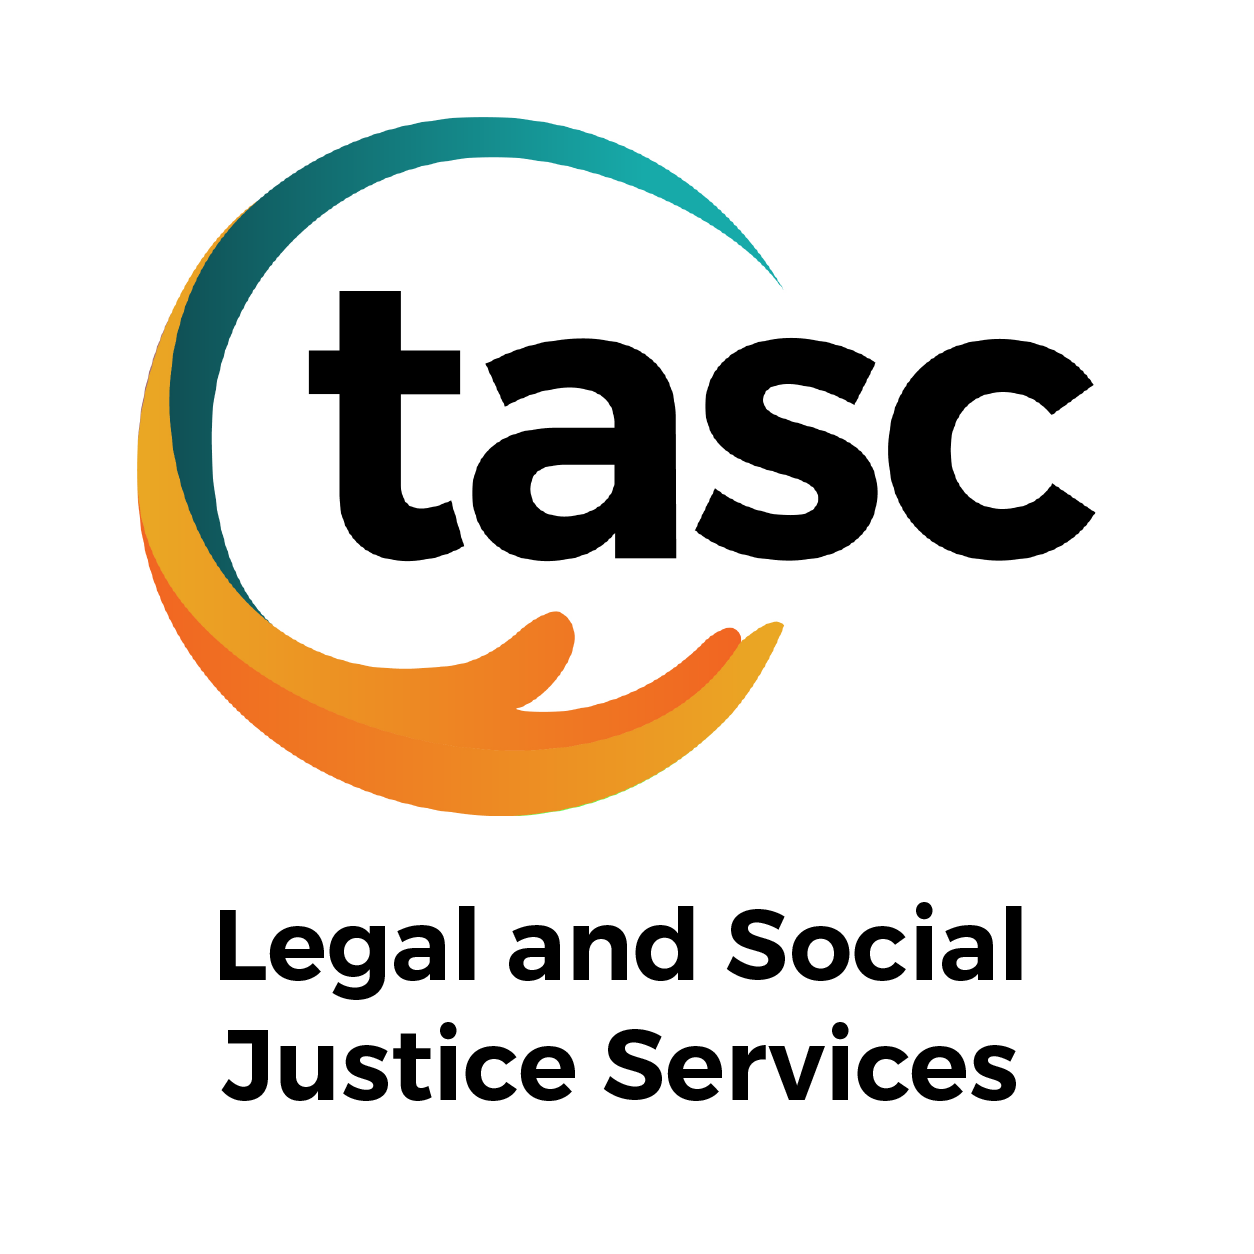 TASC Legal and Social Justice Services